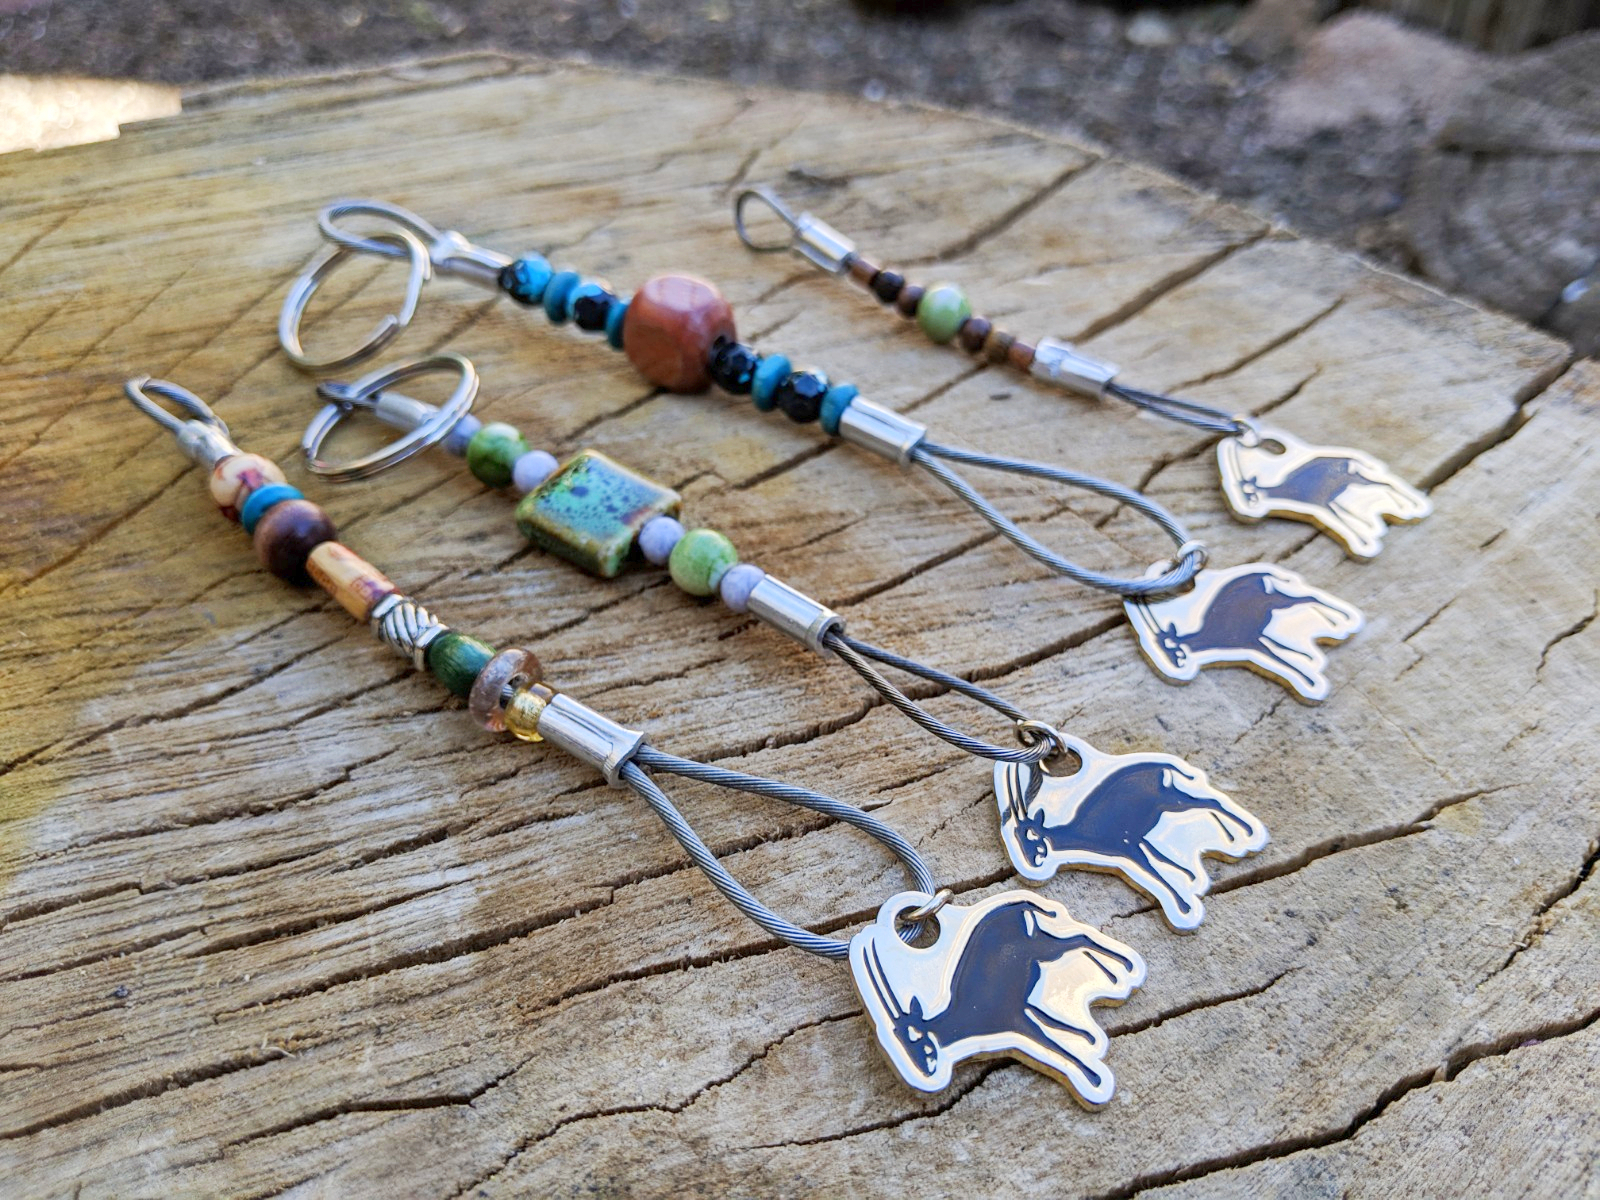 Keychains with animal shapes.